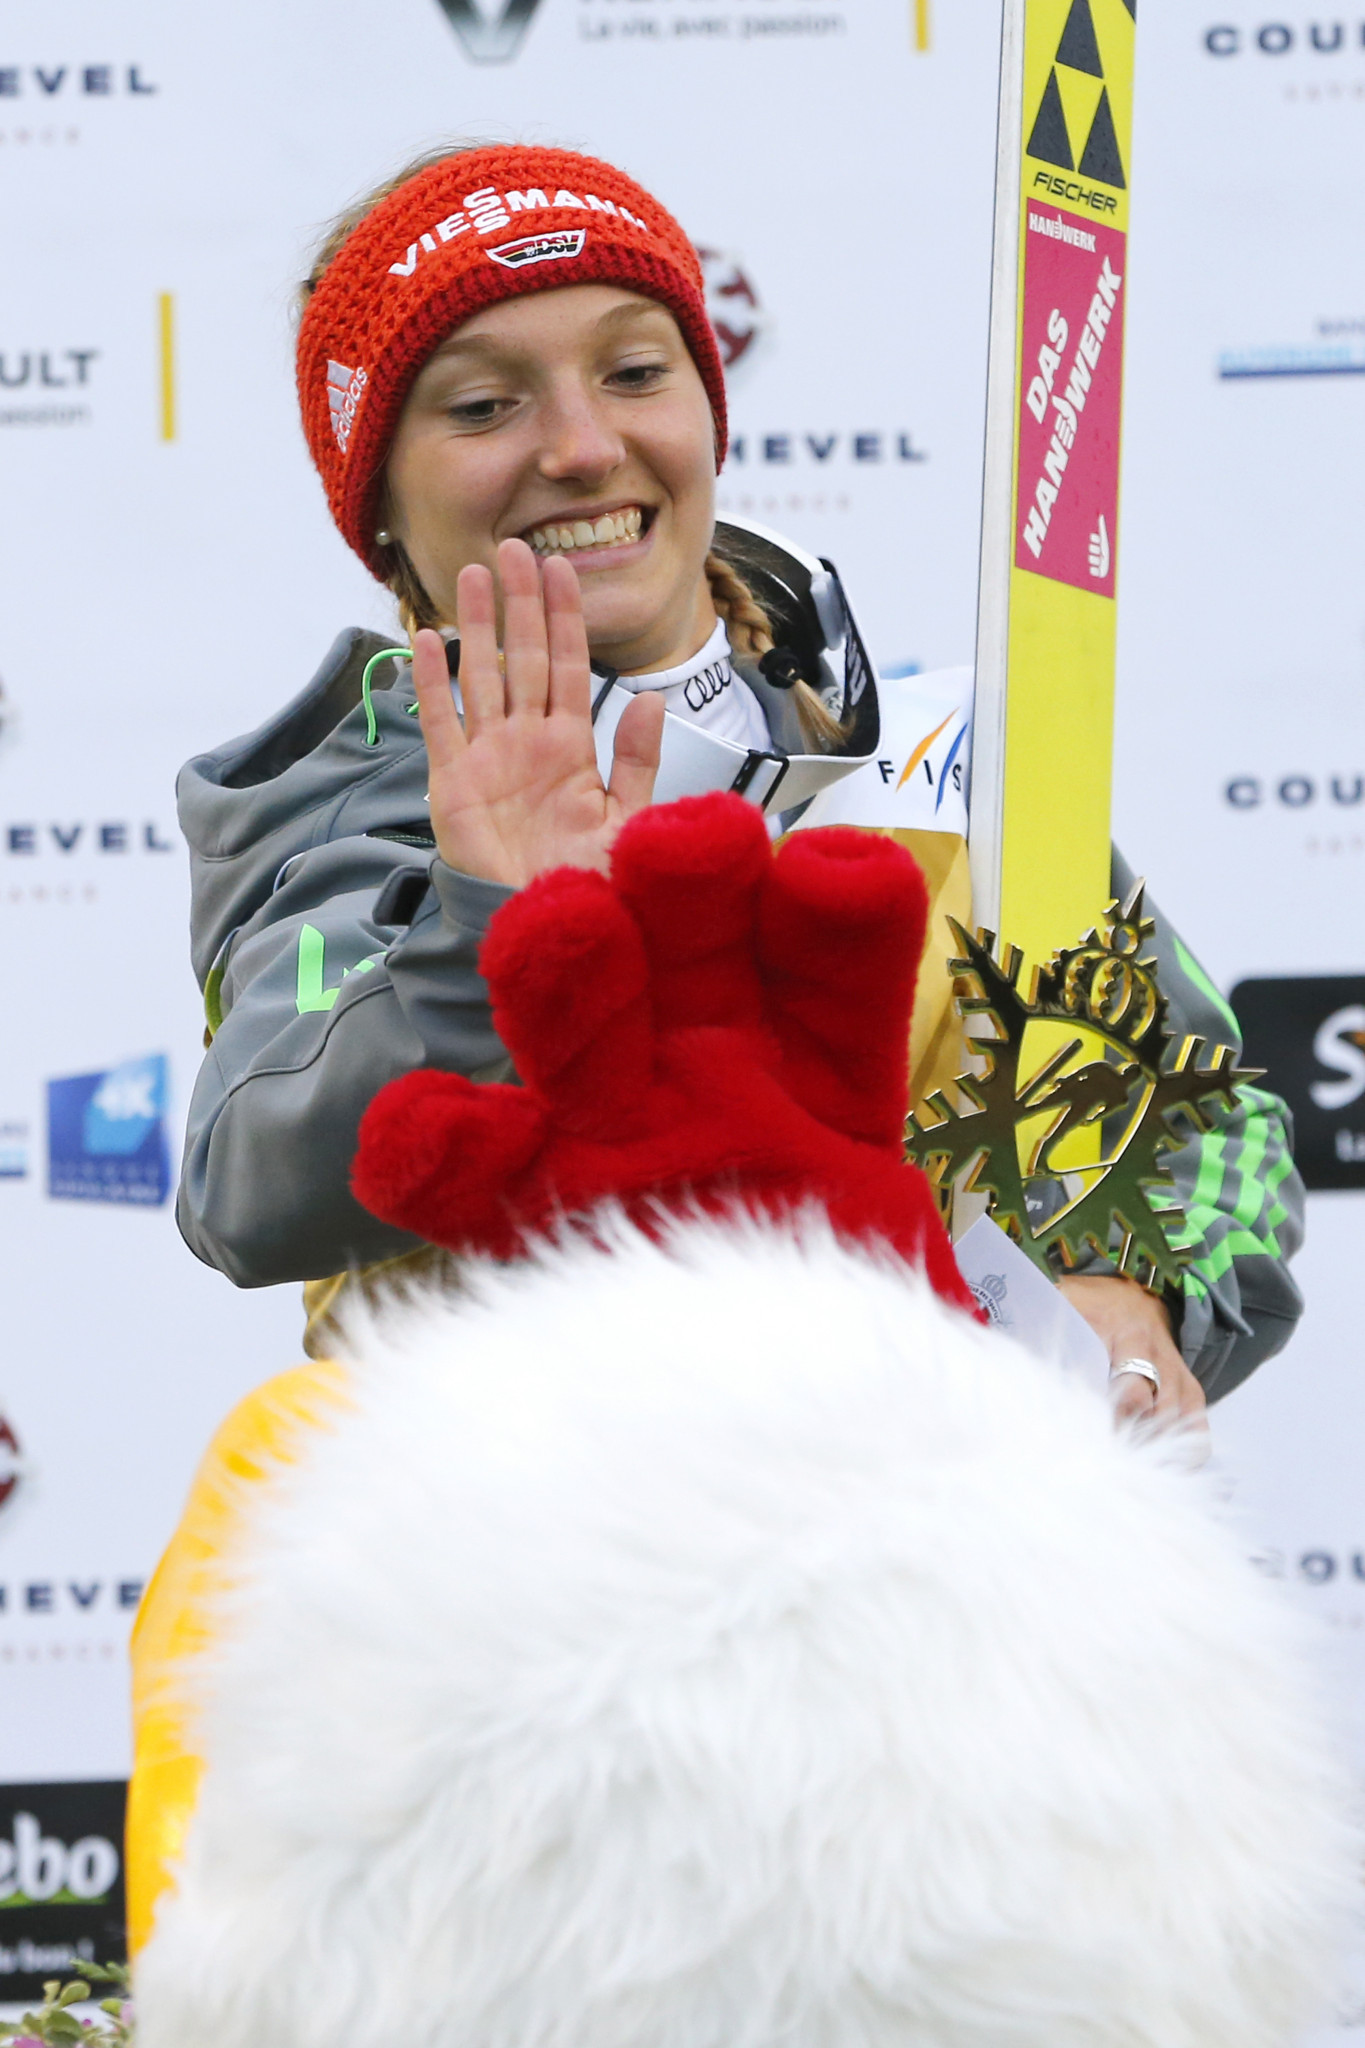 Germany's Katharina Althaus earned a second win at the FIS Ski-Jumping World Cup at Premanon in France ©Getty Images